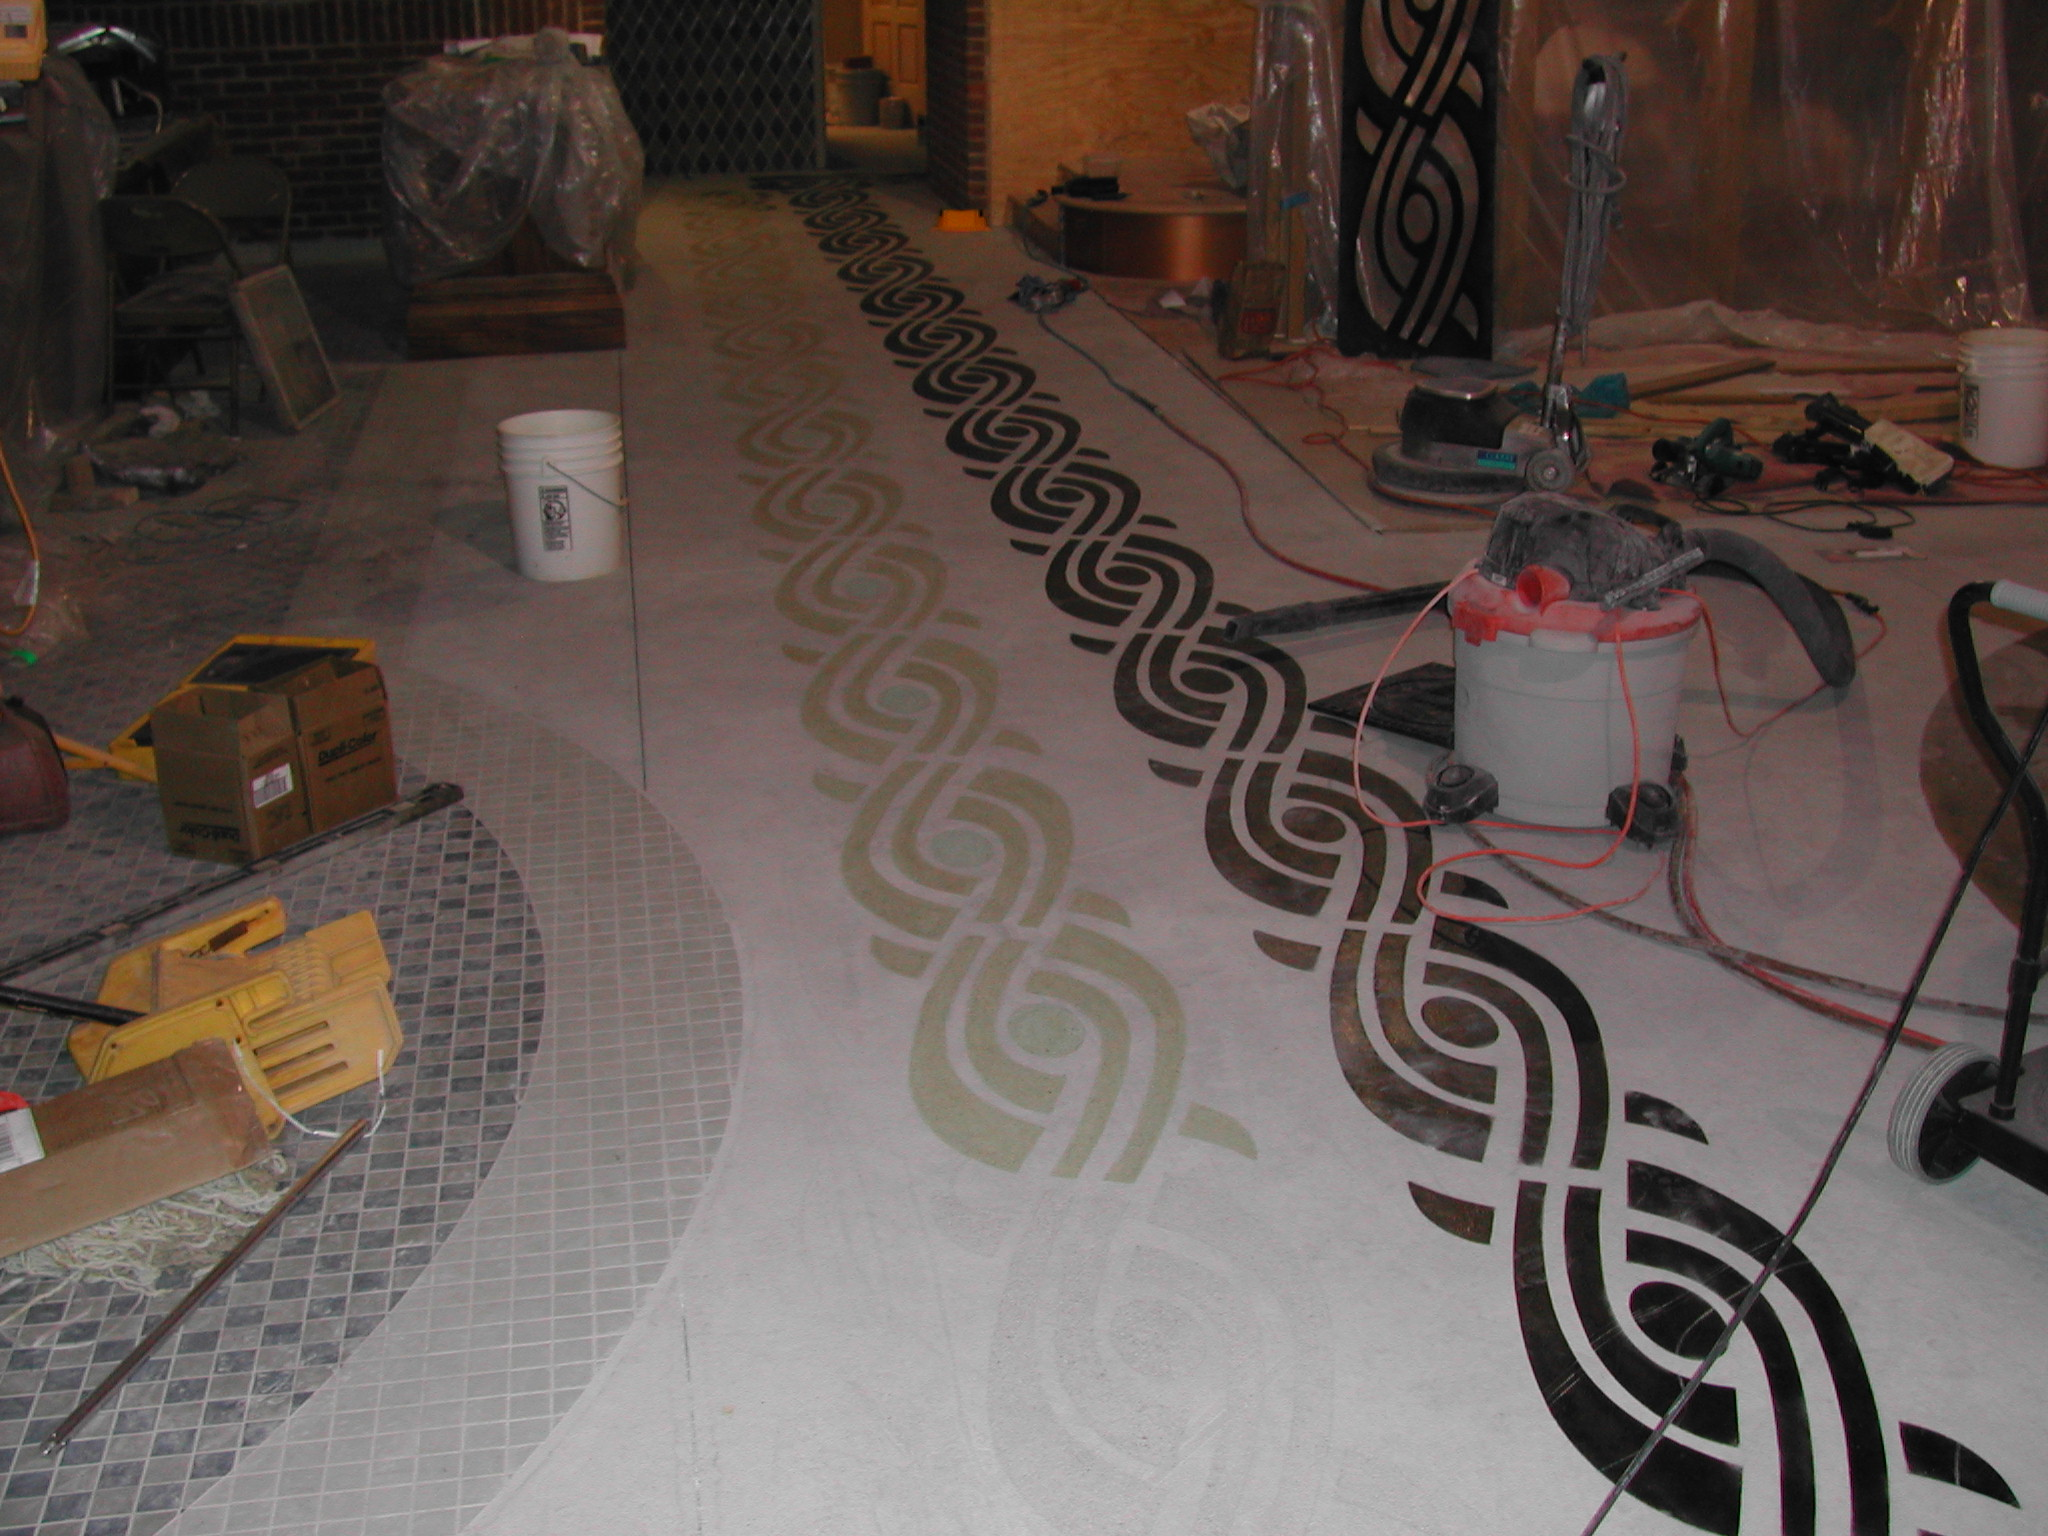 A border pattern is transferred to the concrete floor in a bar using black spray lacquer and then those areas are engraved out and acid-stained.